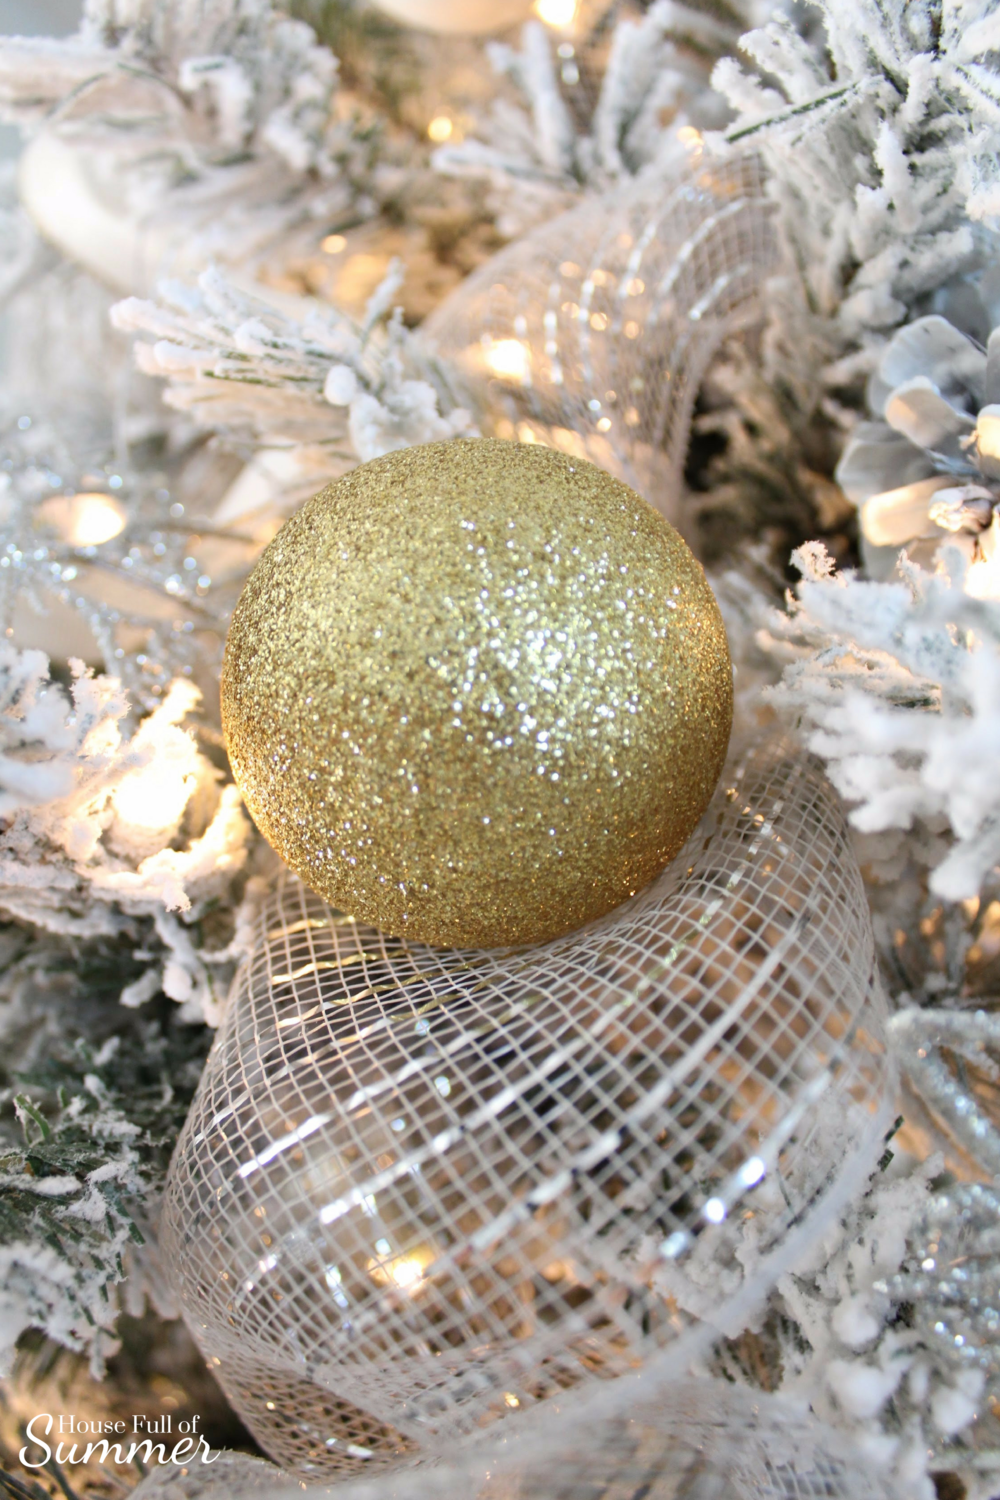 Christmas Home Tour | House Full of Summer blog hop - Cheerful Christmas Home Tourcoastal christmas neutral christmas decor, holiday home tour, florida christmas, gold ornament